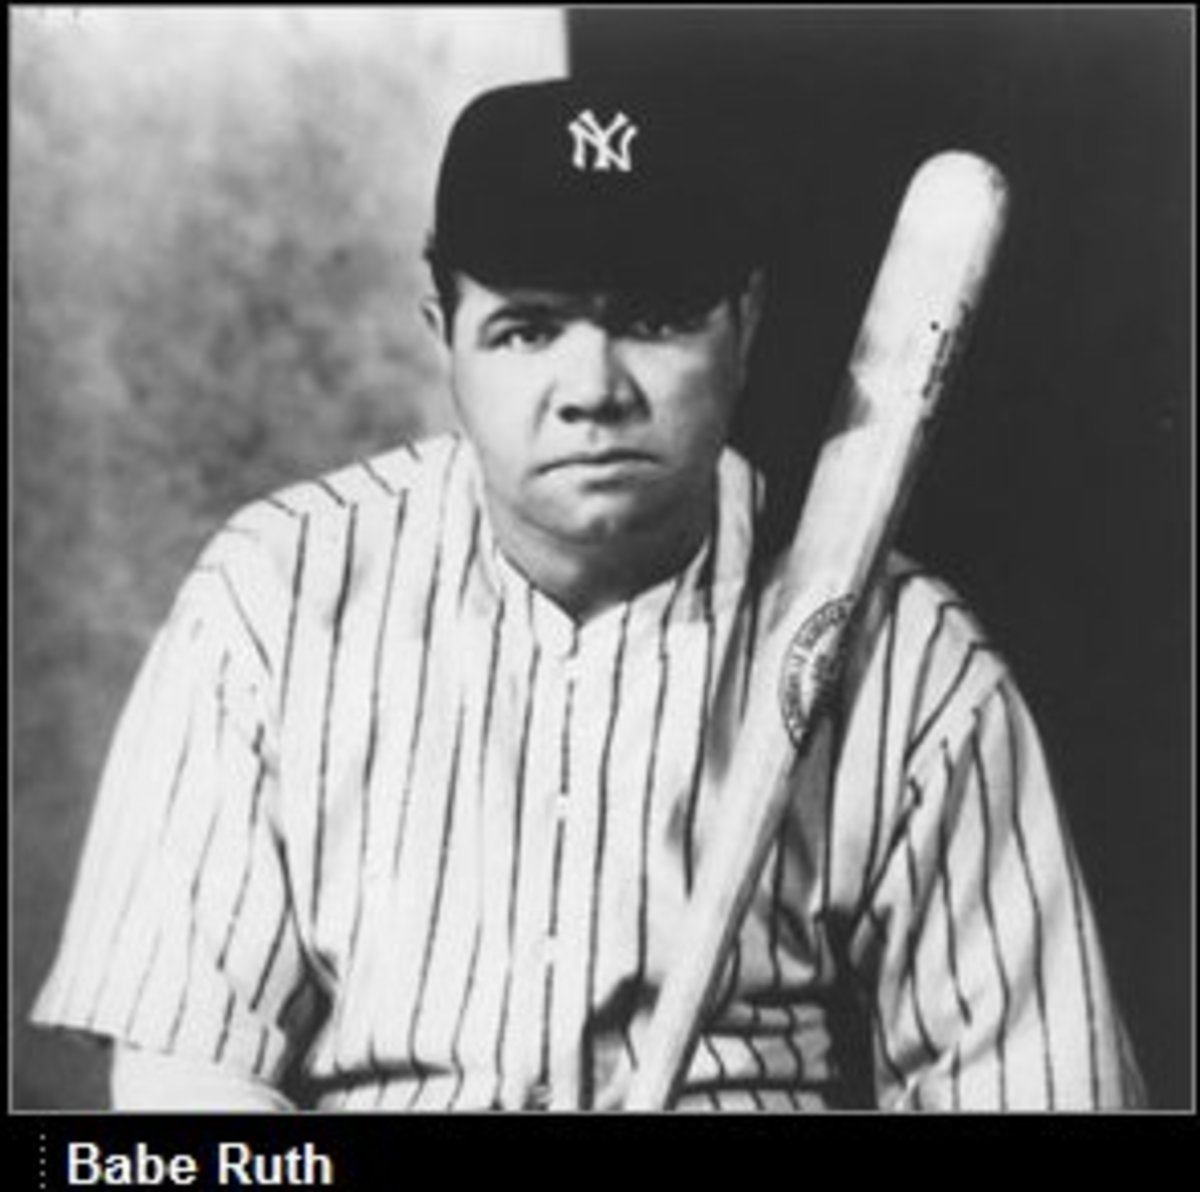 Baseball Legend: Babe Ruth Biography